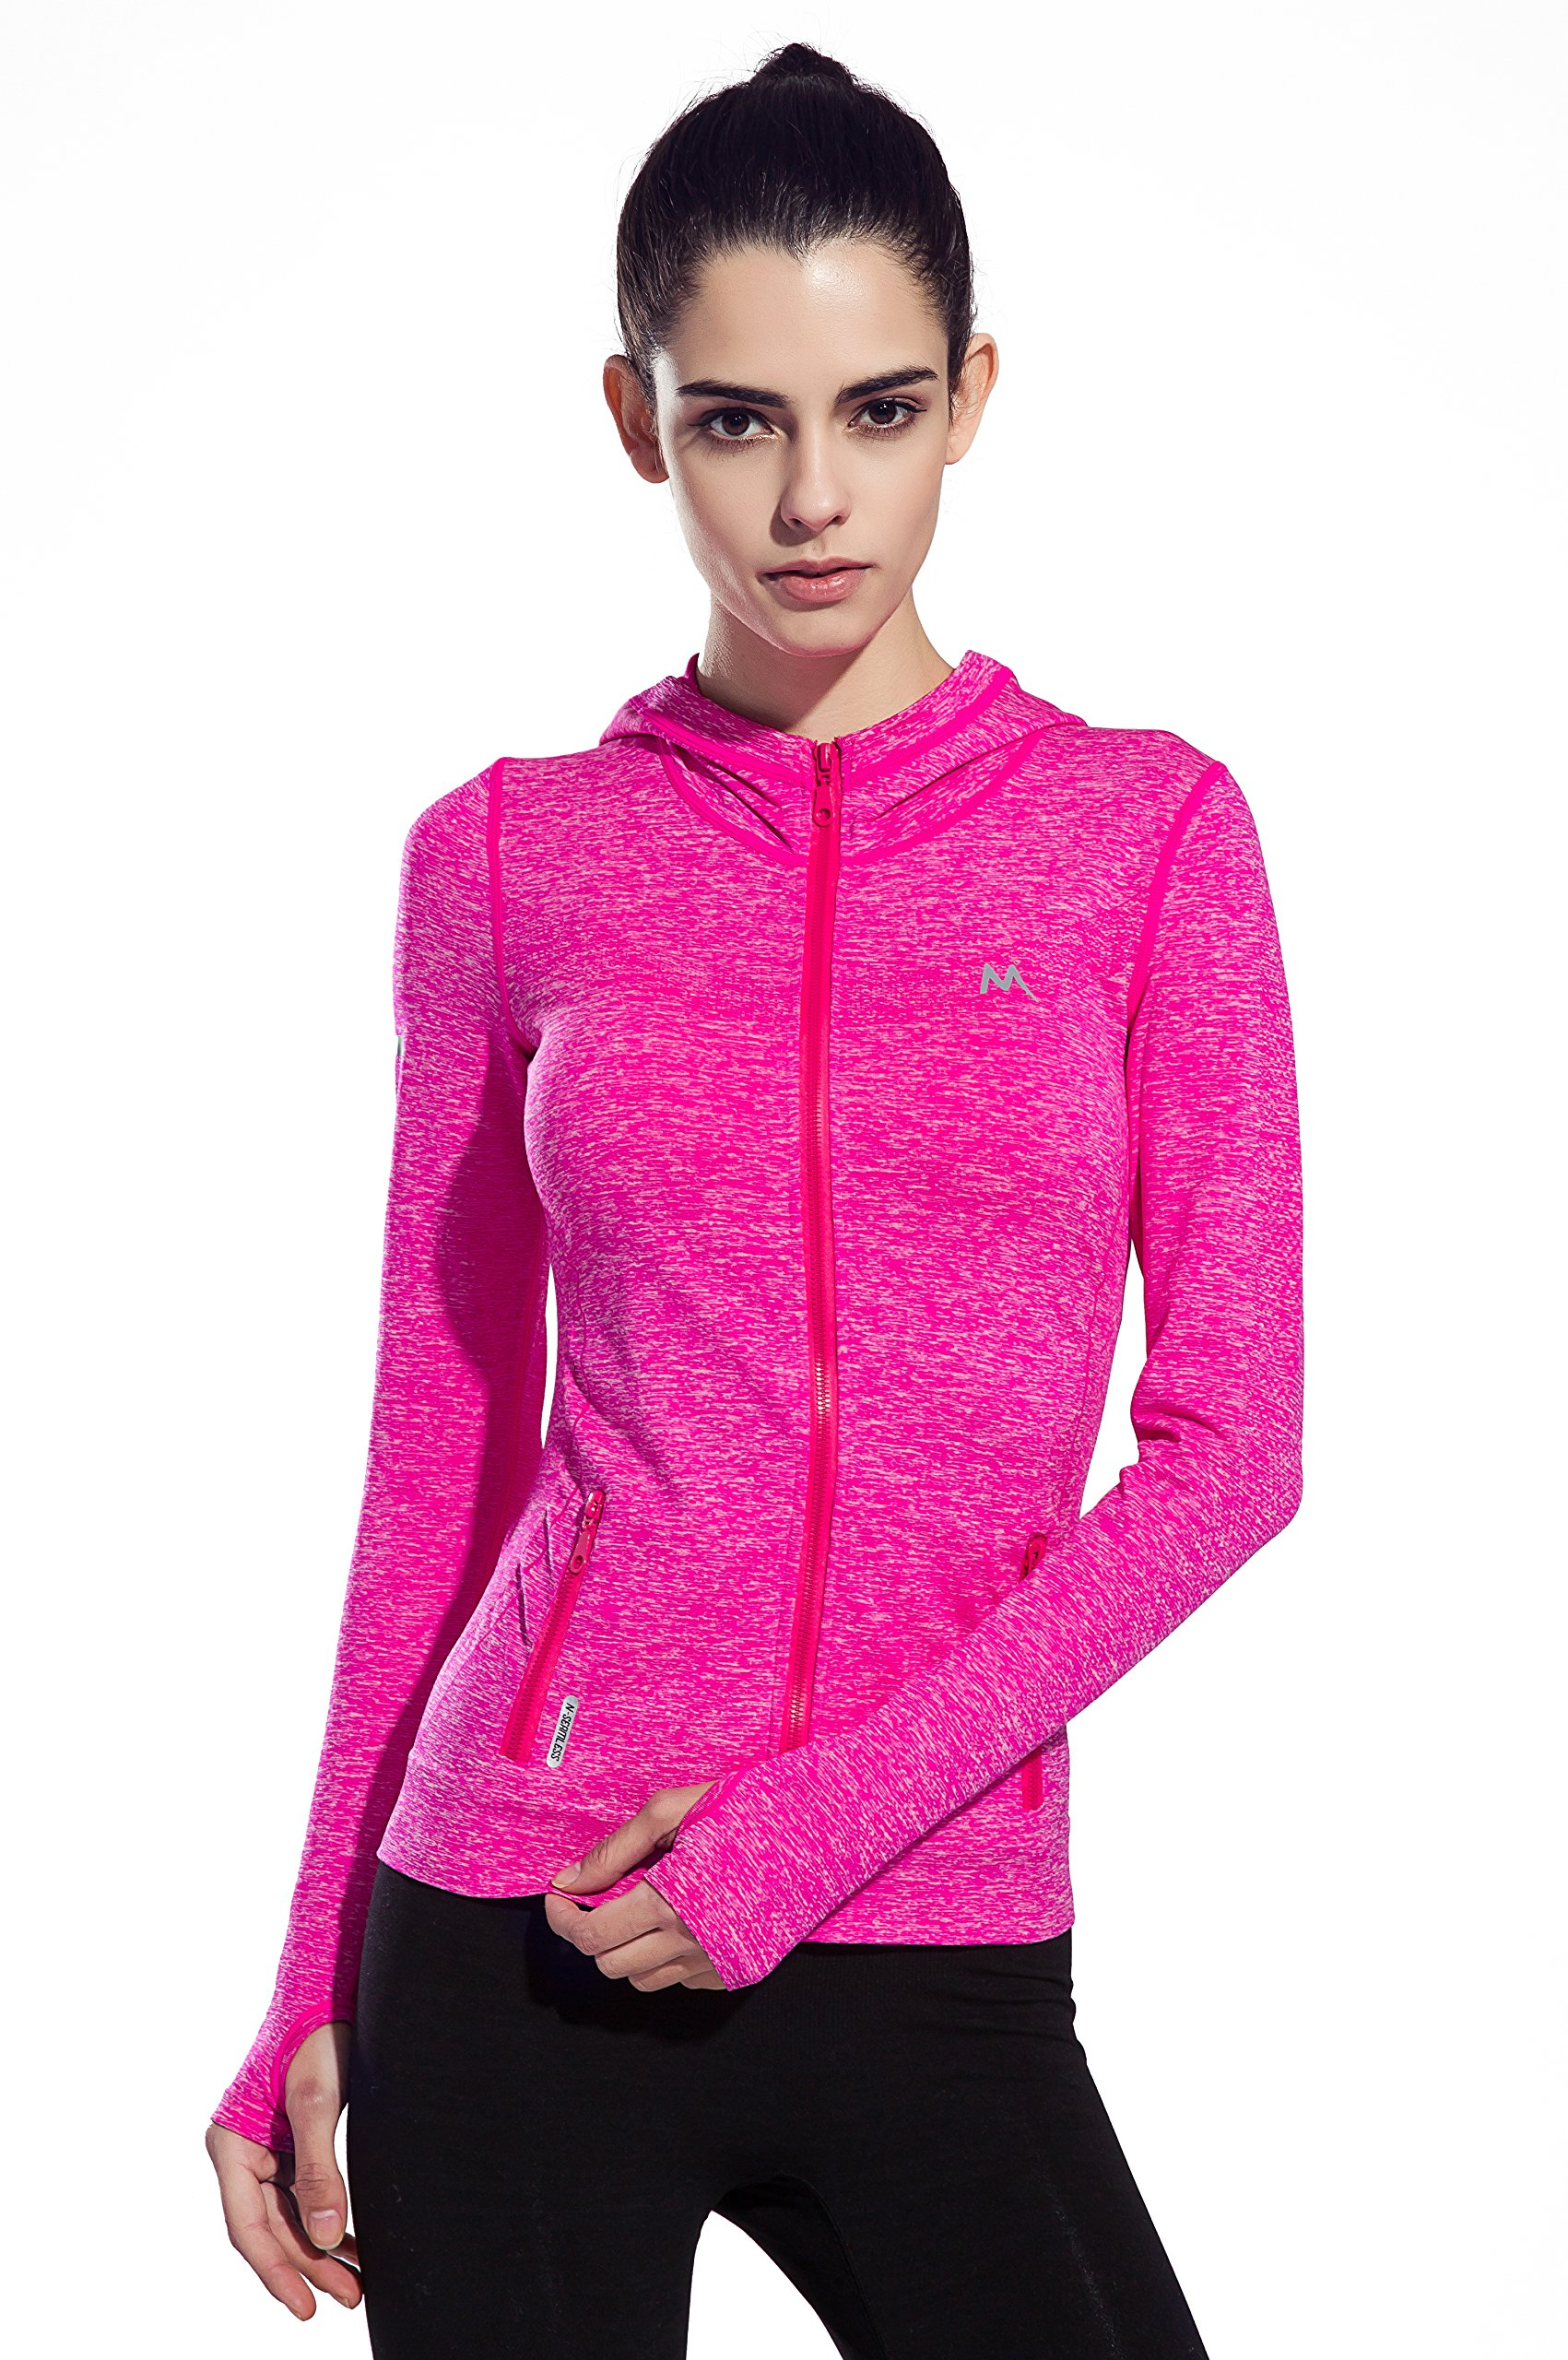 HonourSport Women's Stretchy Workout Dri-Fit Hooded Jacket Pink, S